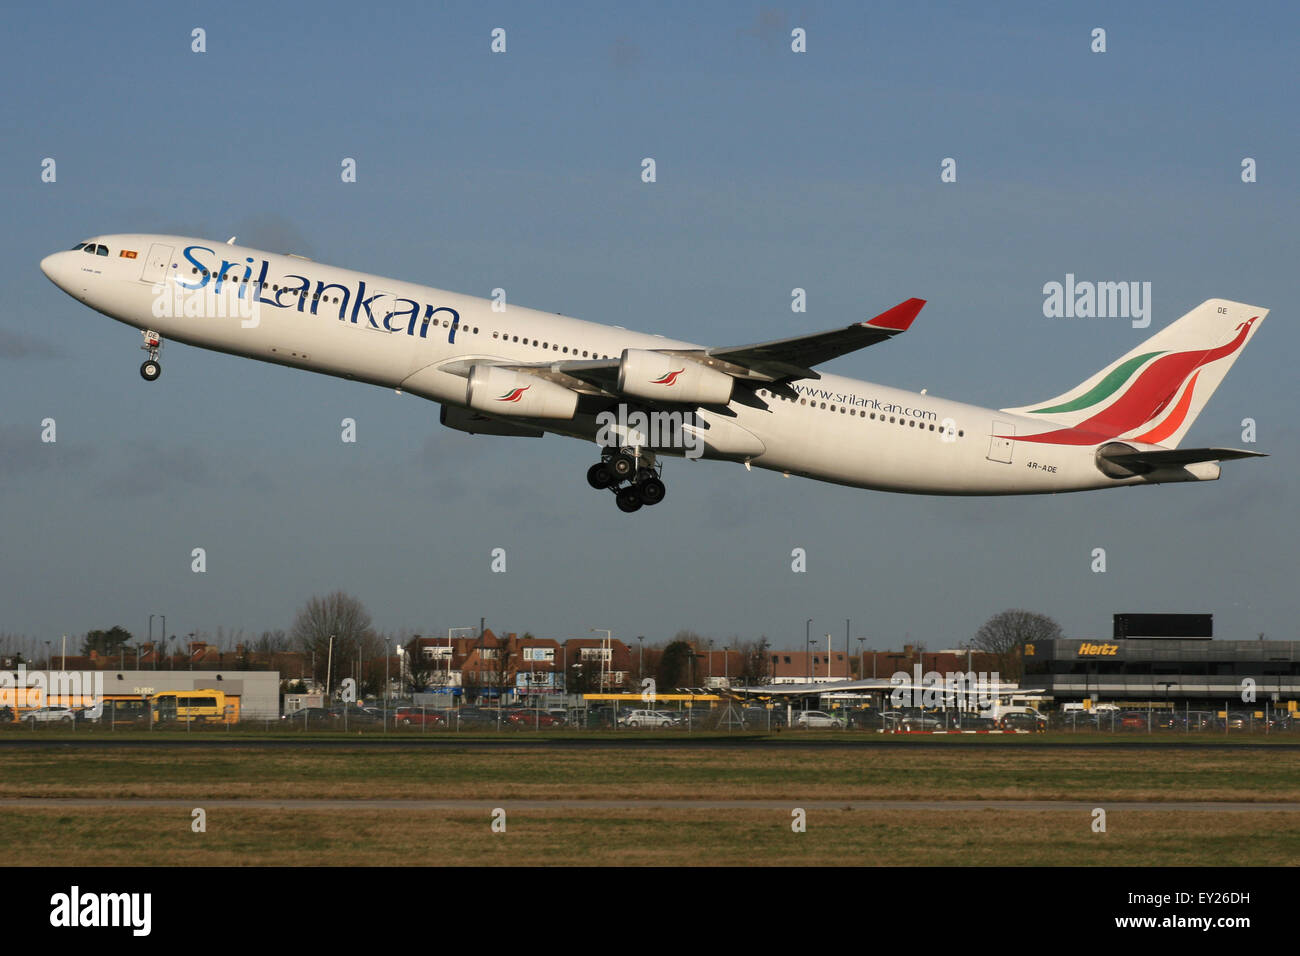 SRI LANKA SRILANKAN A340 Stock Photo